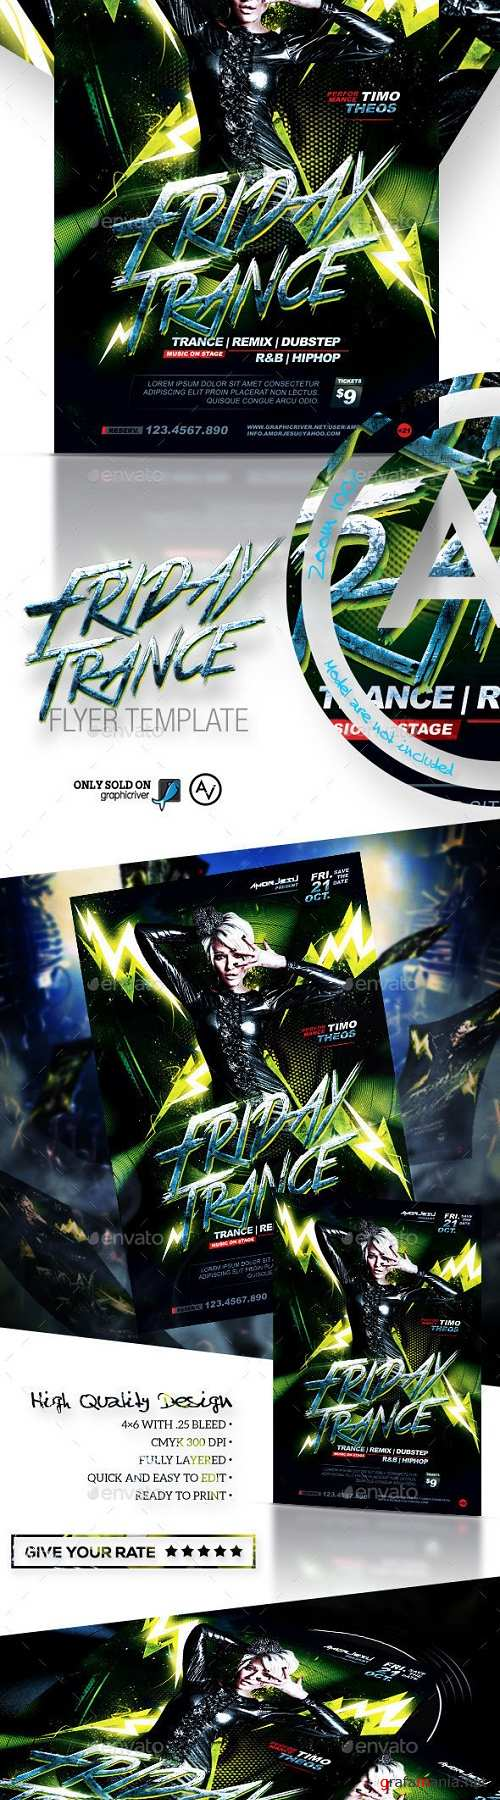 Friday Trance Flyer Template 11582071